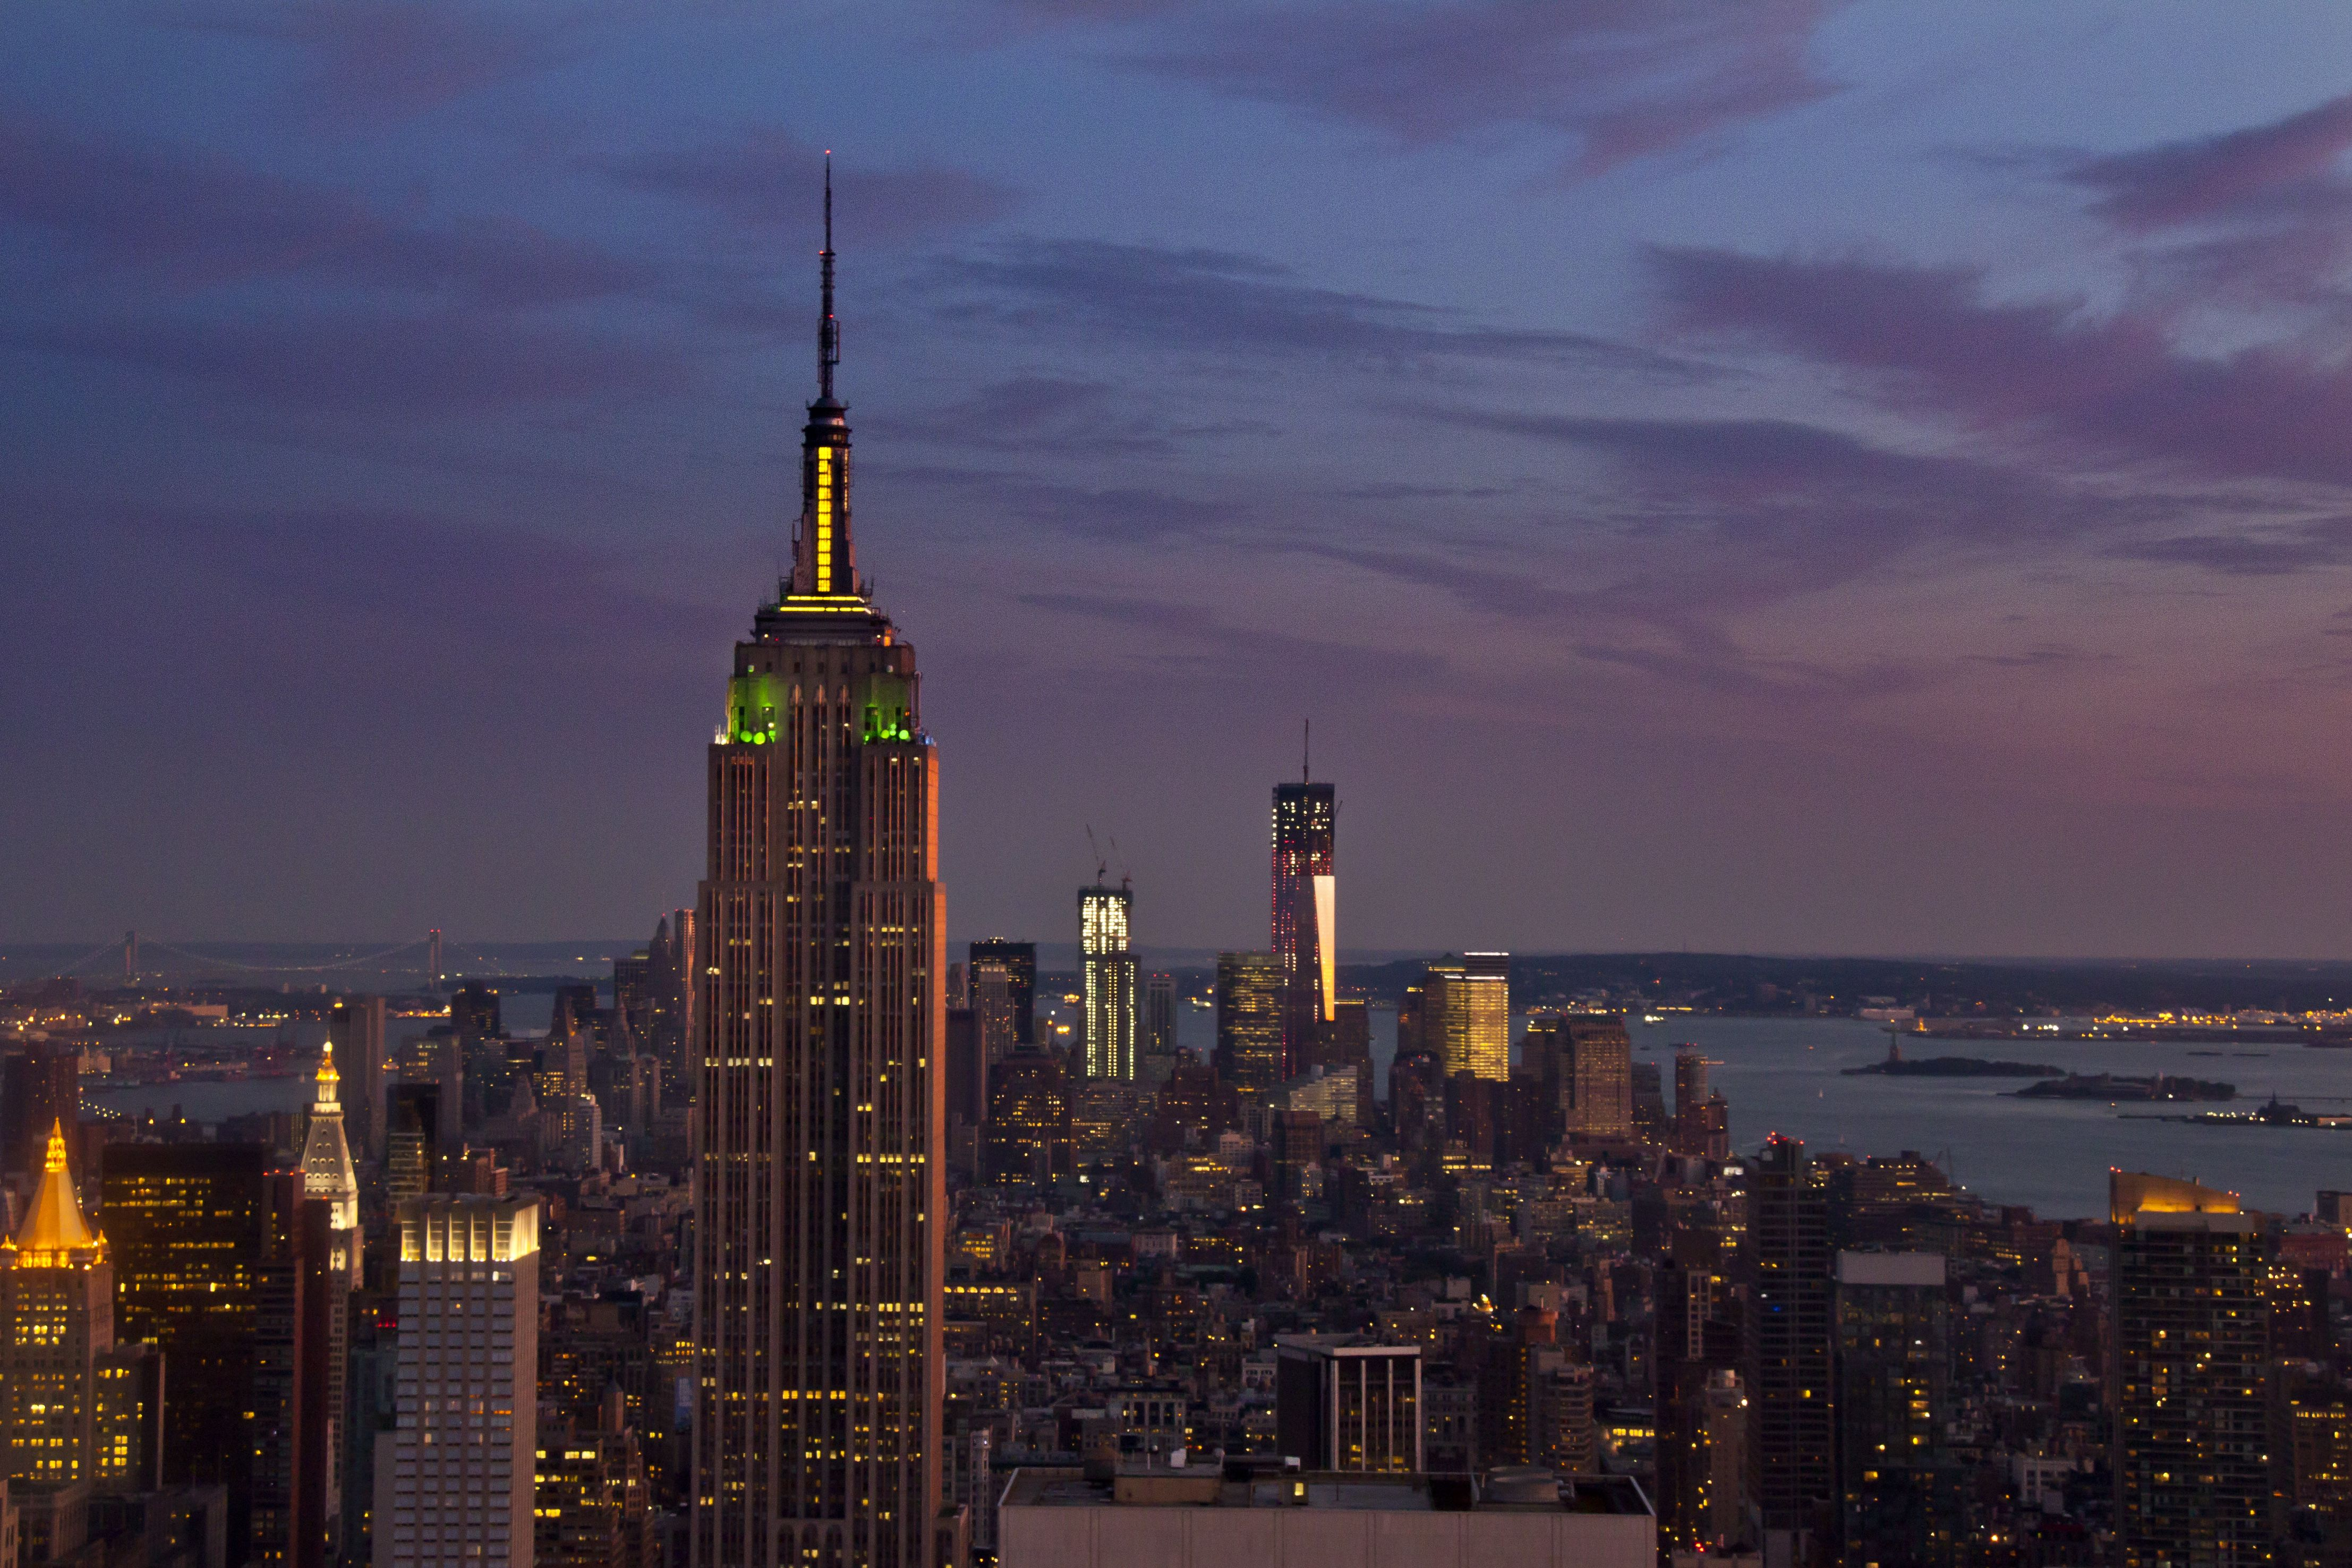 NY from top at sunset __--__ more @ nw7.eu